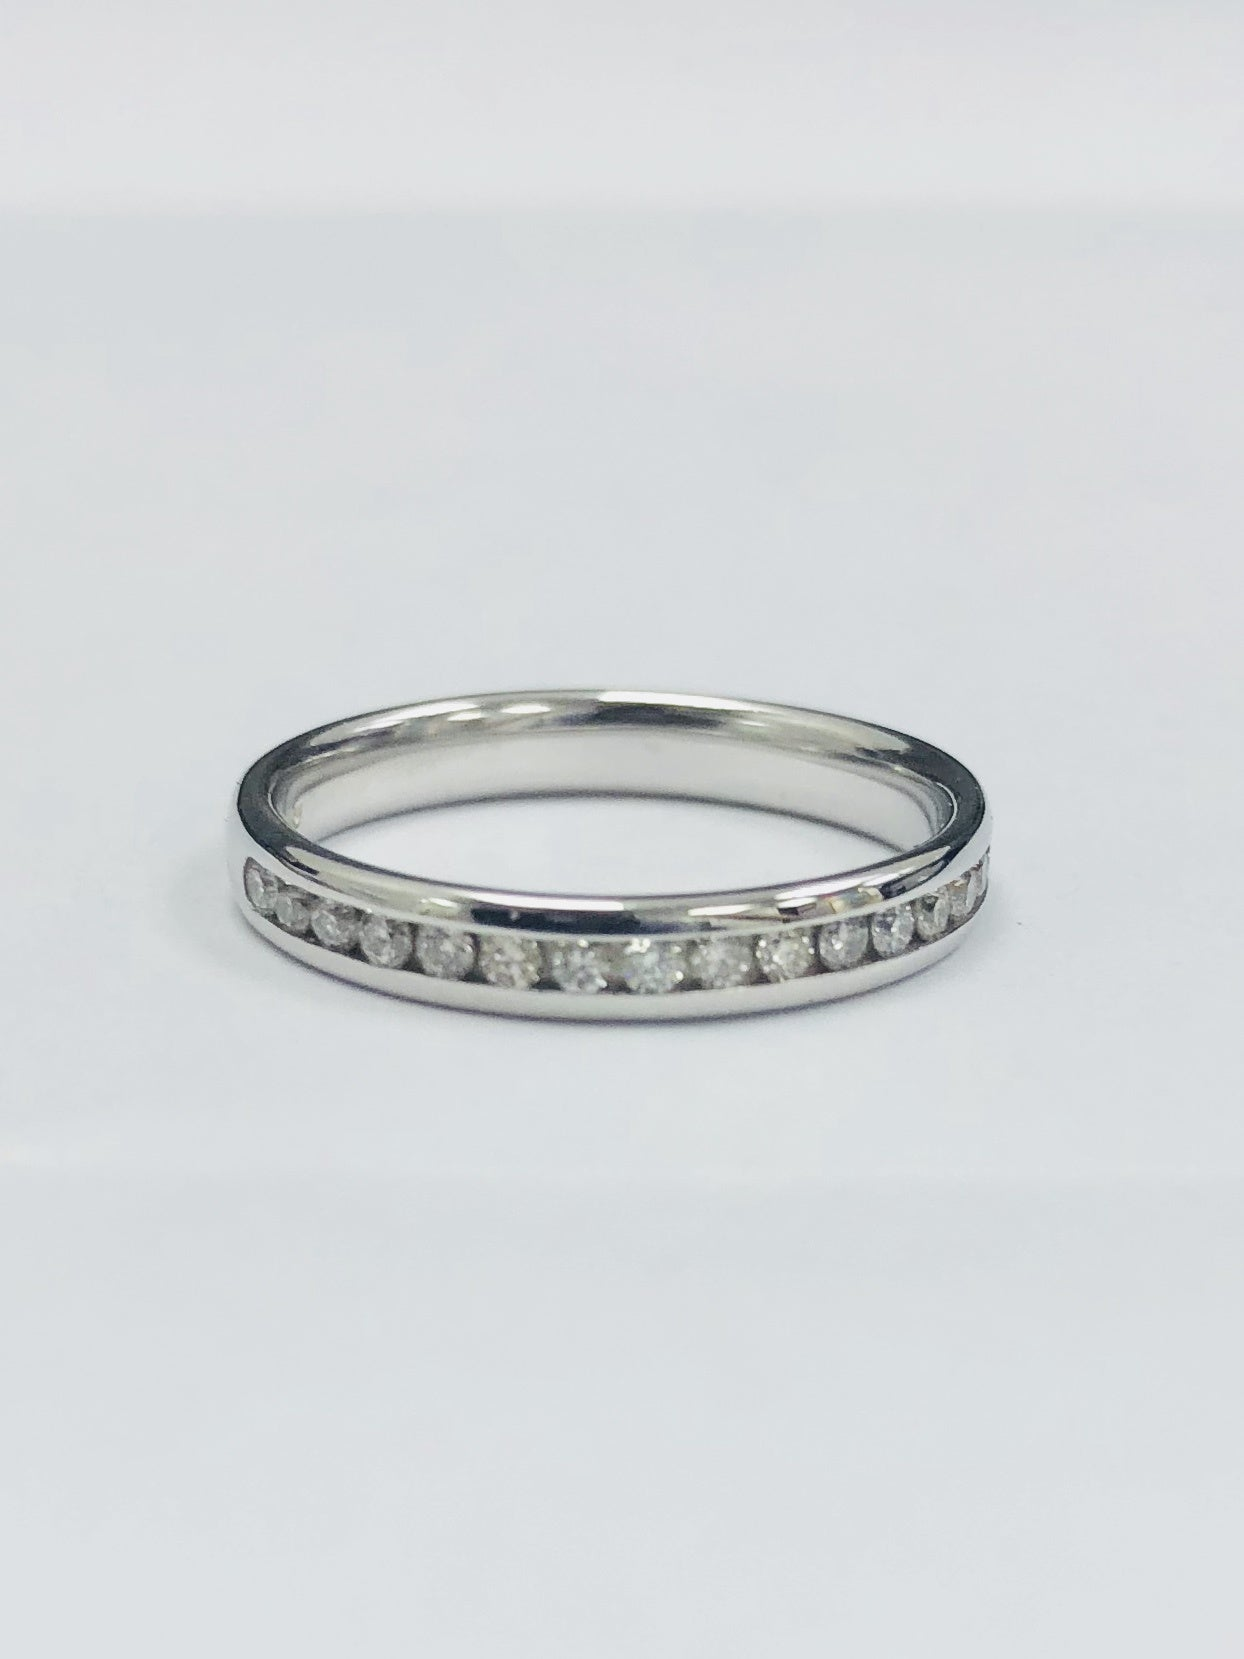 Platinum & Diamond Half wedding/Eternity Ring - RHODES2 - Robert Openshaw Fine Jewellery